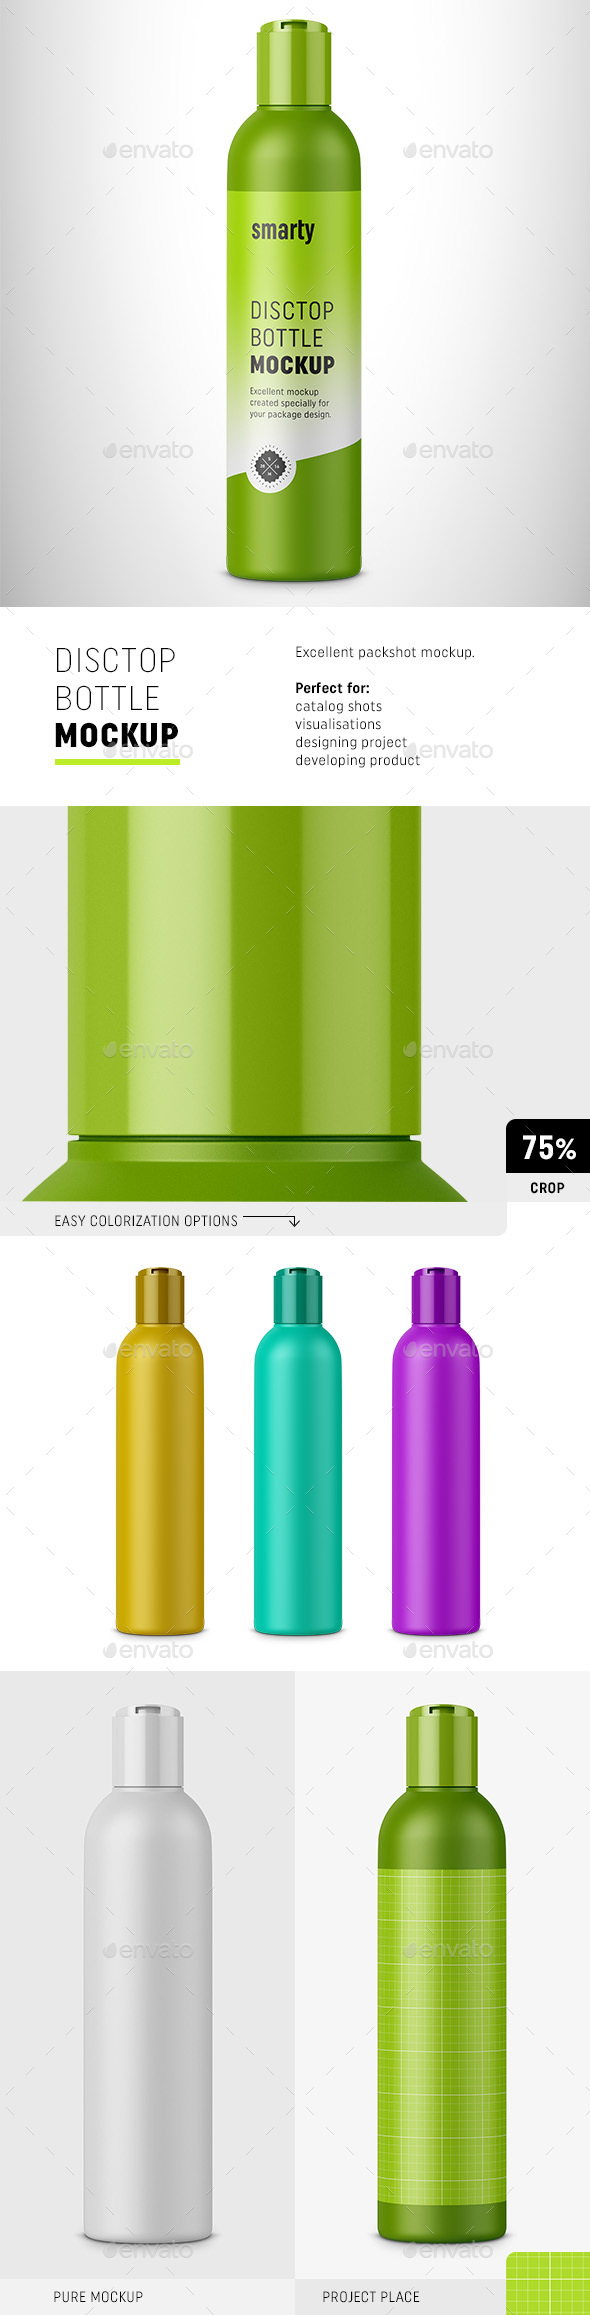 Cosmetic Bottle with Disctop - Beauty Packaging